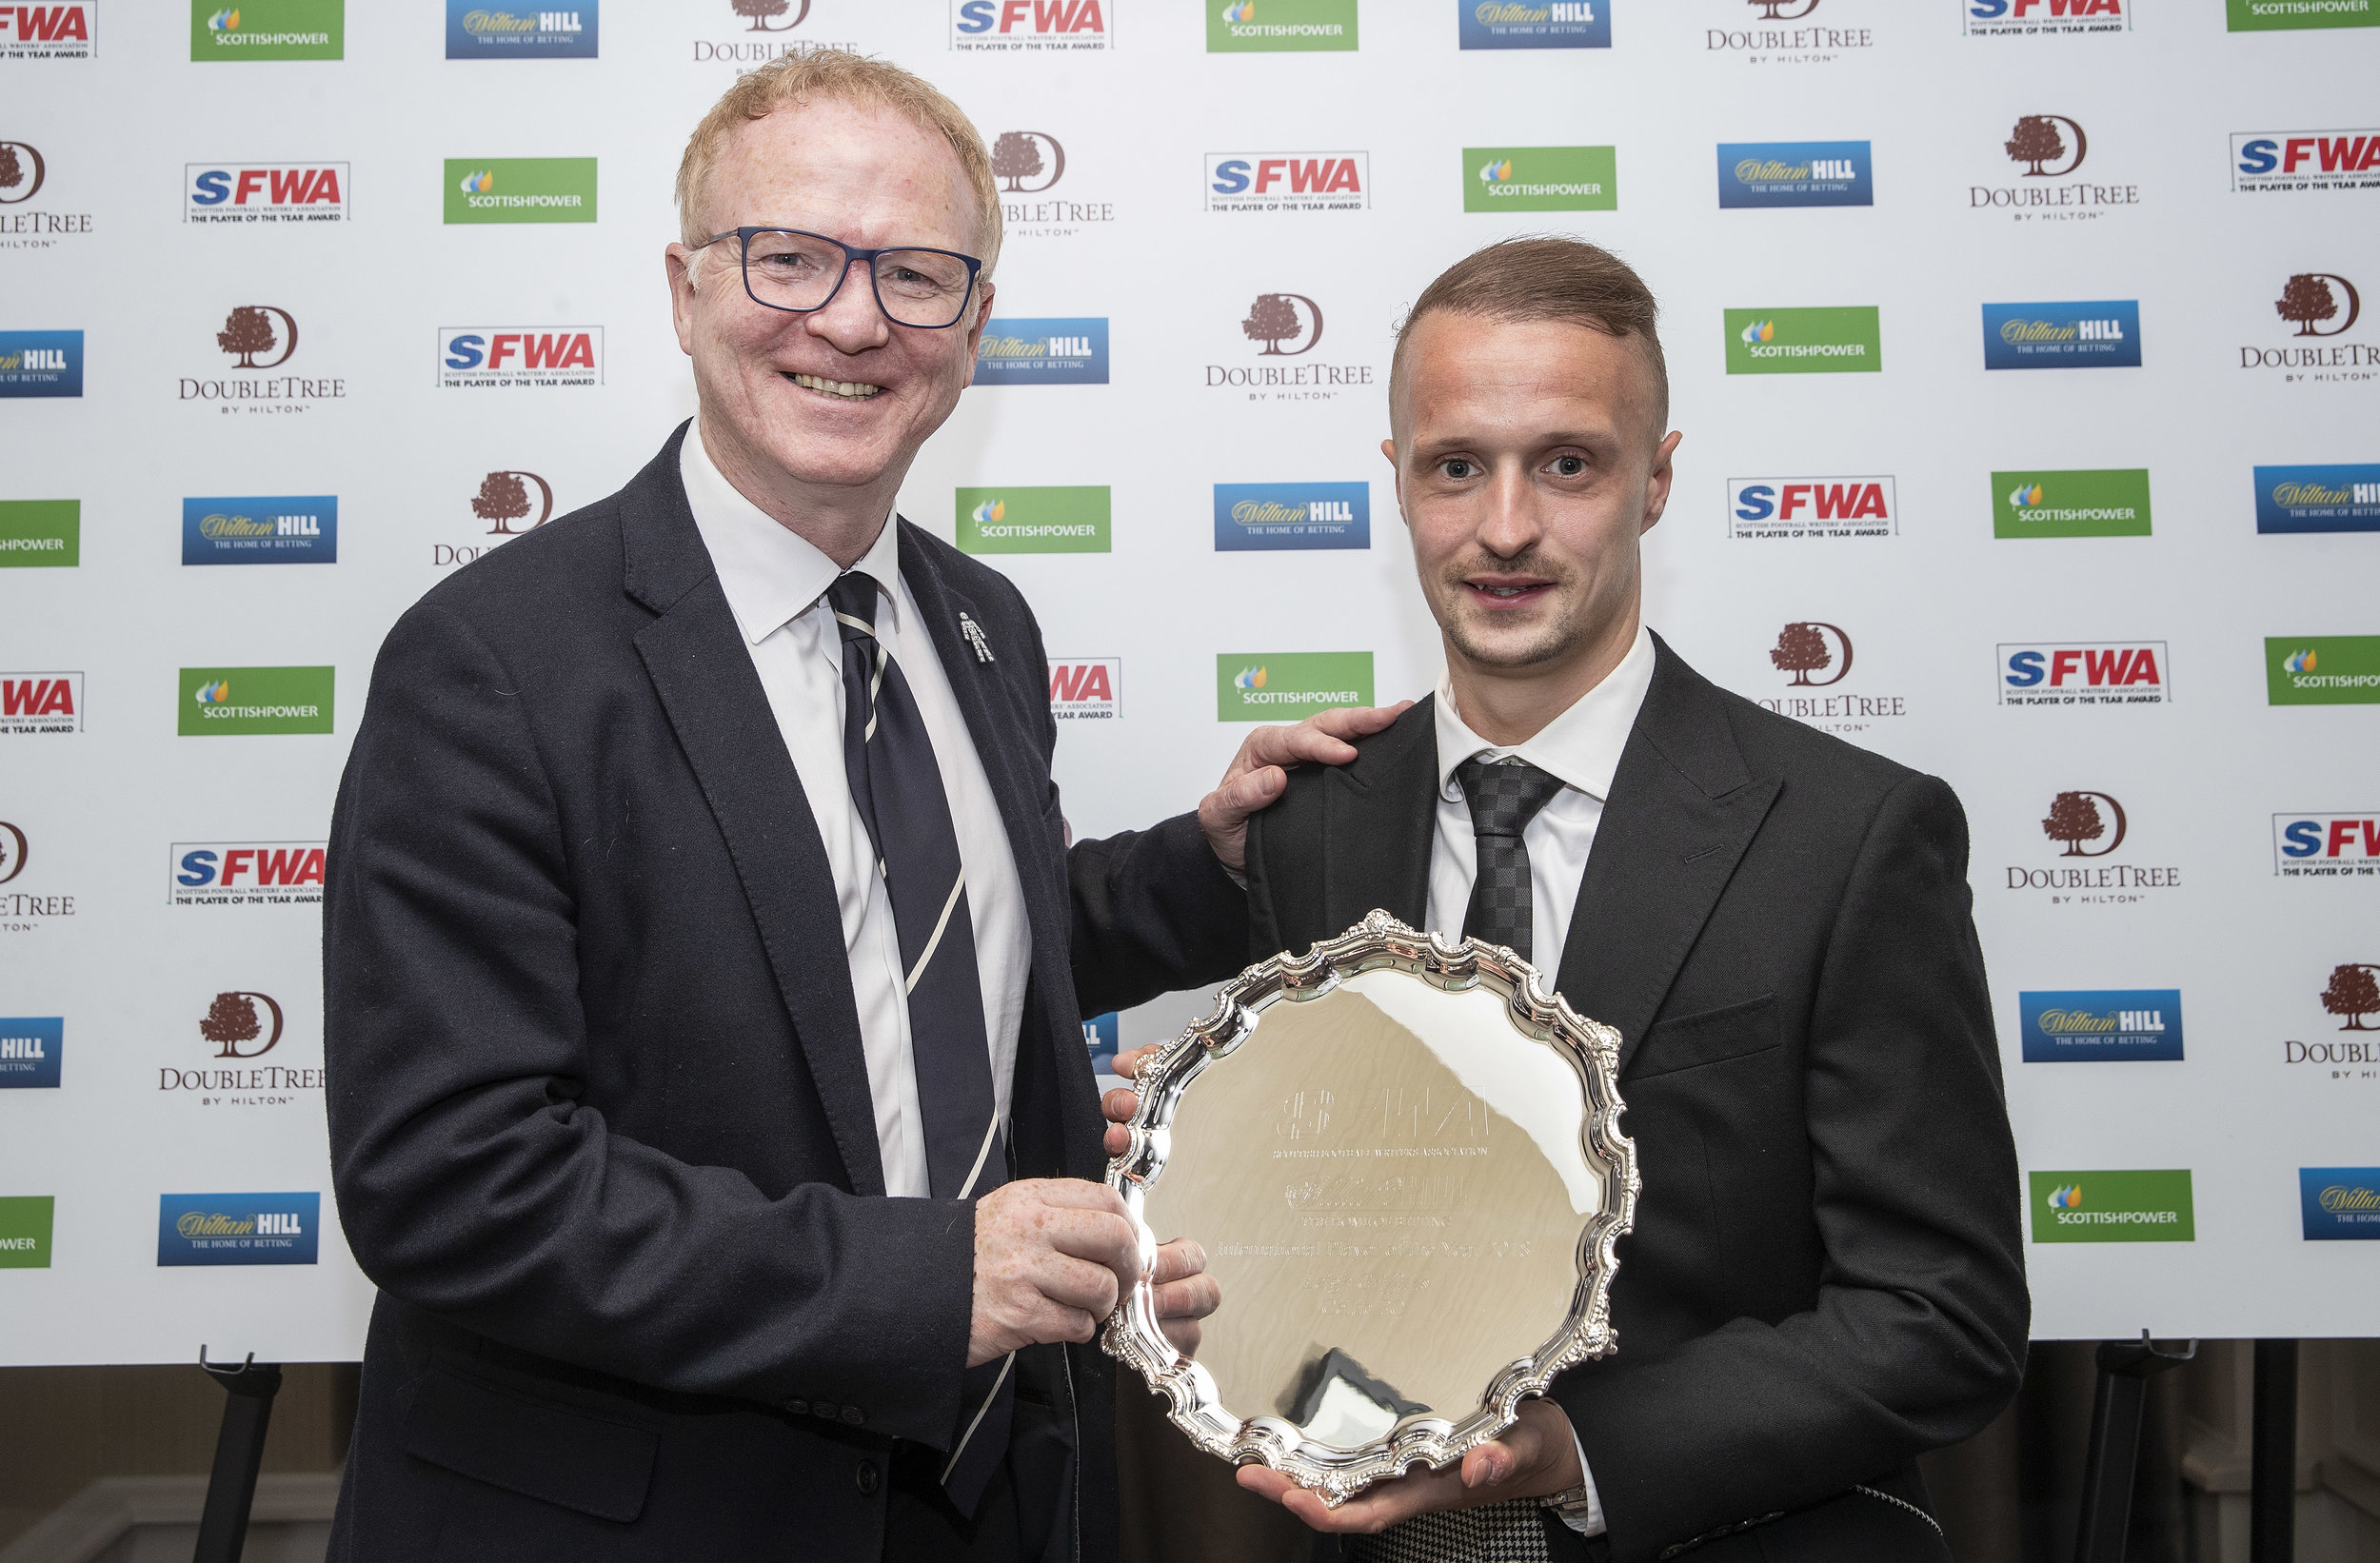 Scotland manager Alex McLeish presents Leigh Griffiths with the 2018 International Player of the Year award